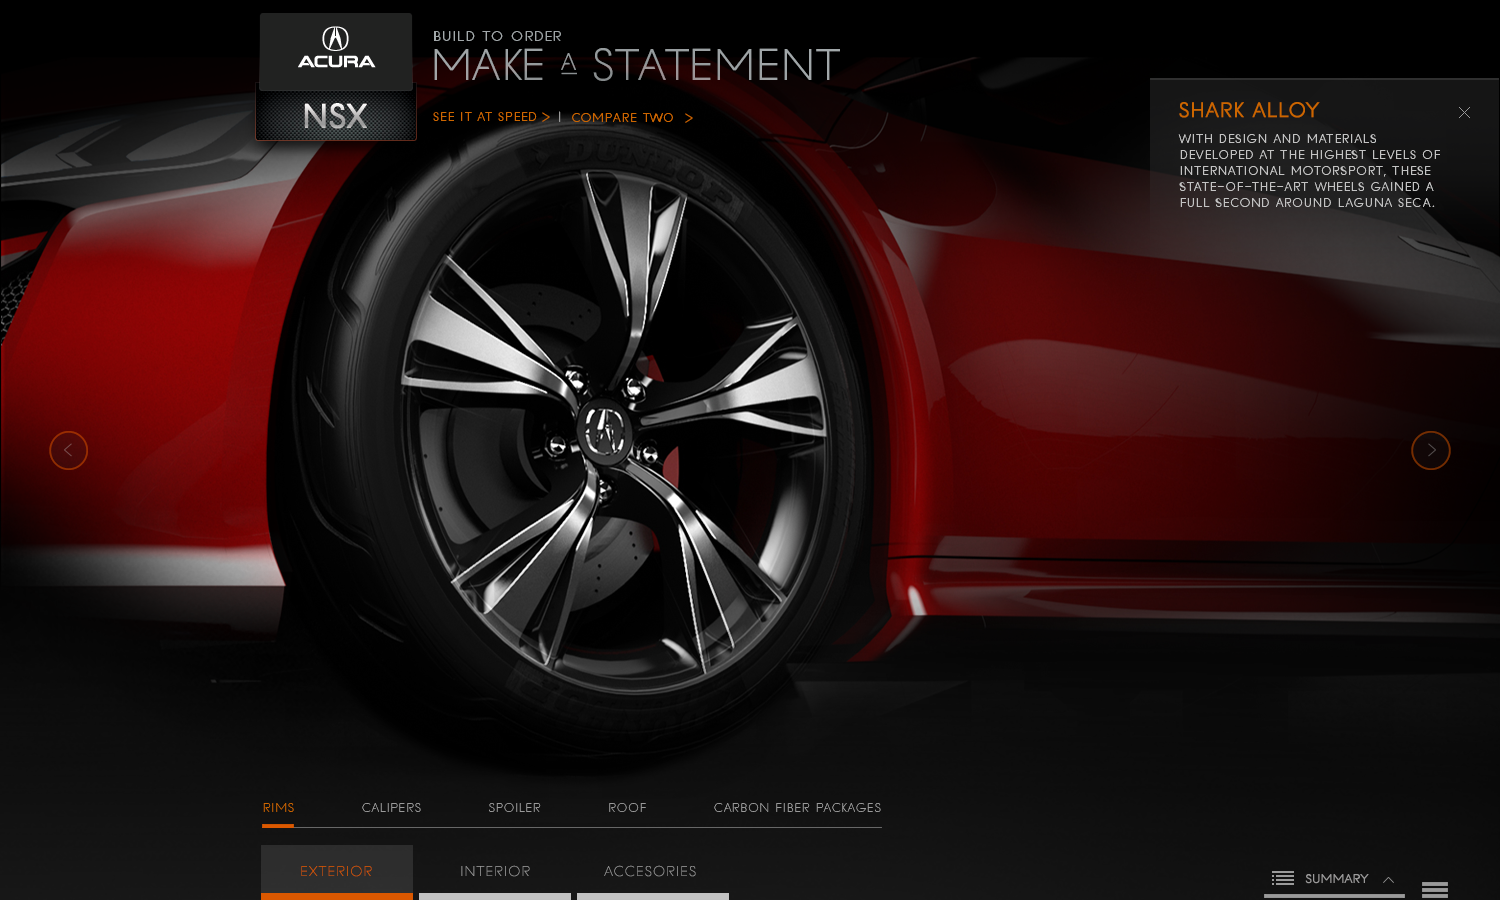 Acura_NSX_BTO_Concept_21.png